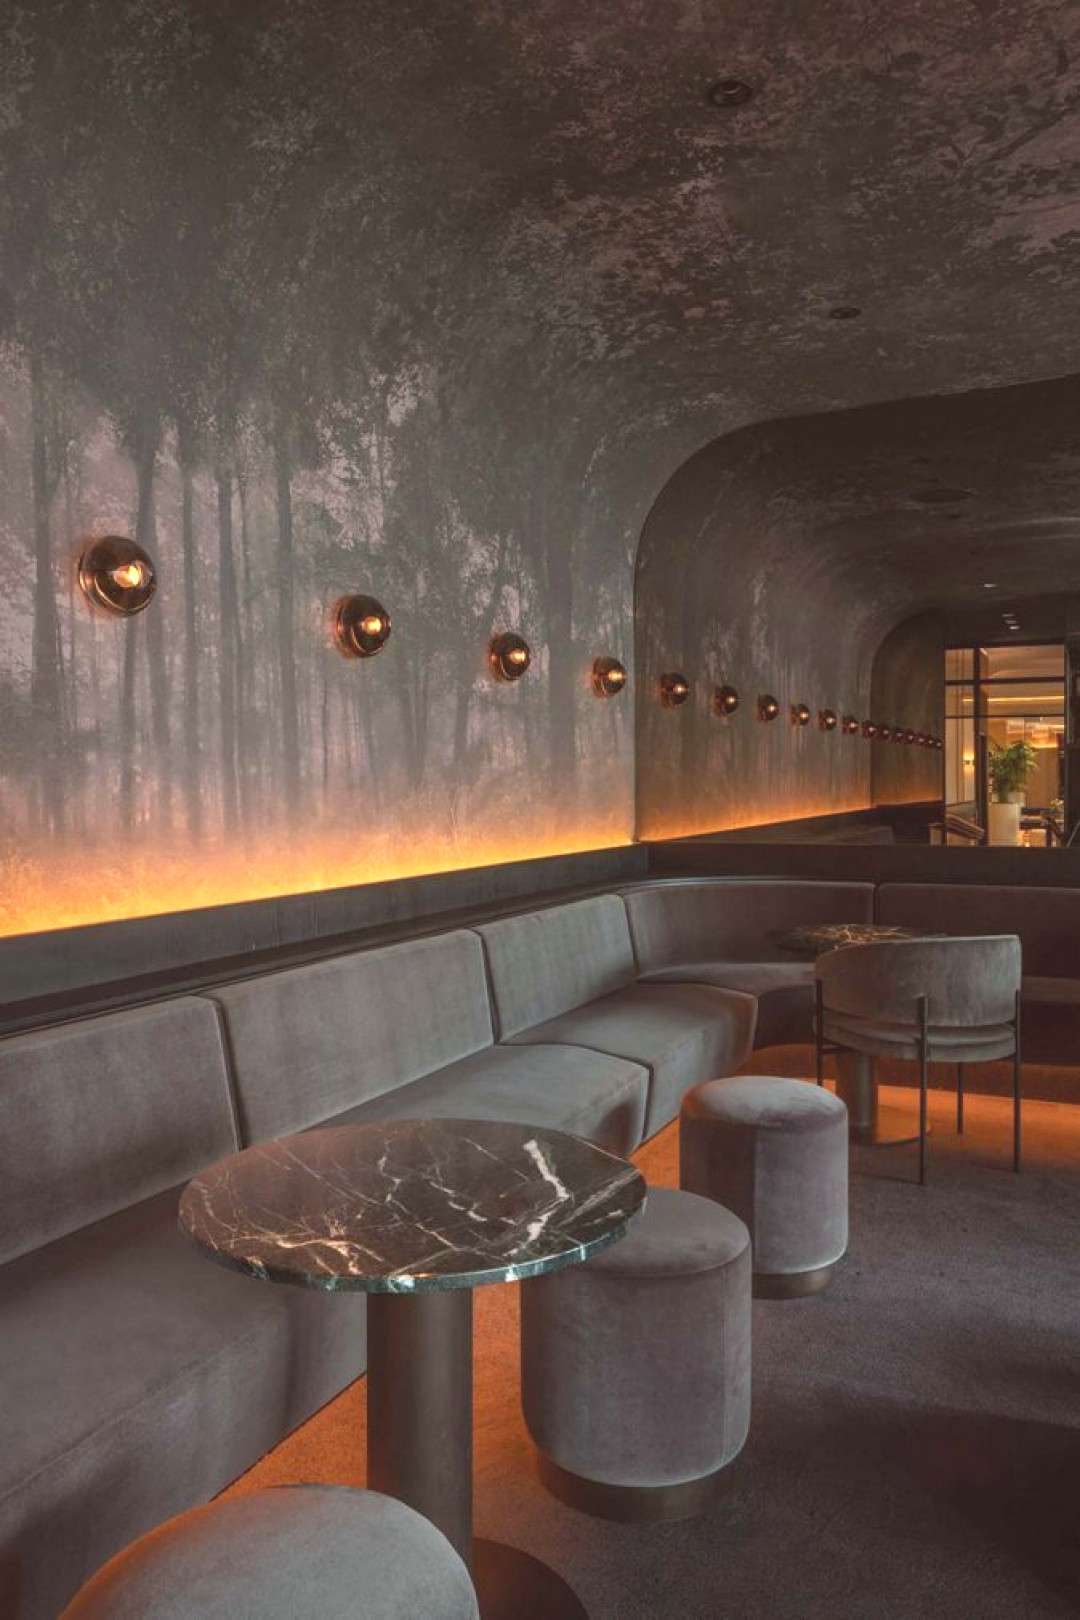 Montreal's Four Seasons - The hotel's interiors by designers Gilles amp Boissier and Philip Haza